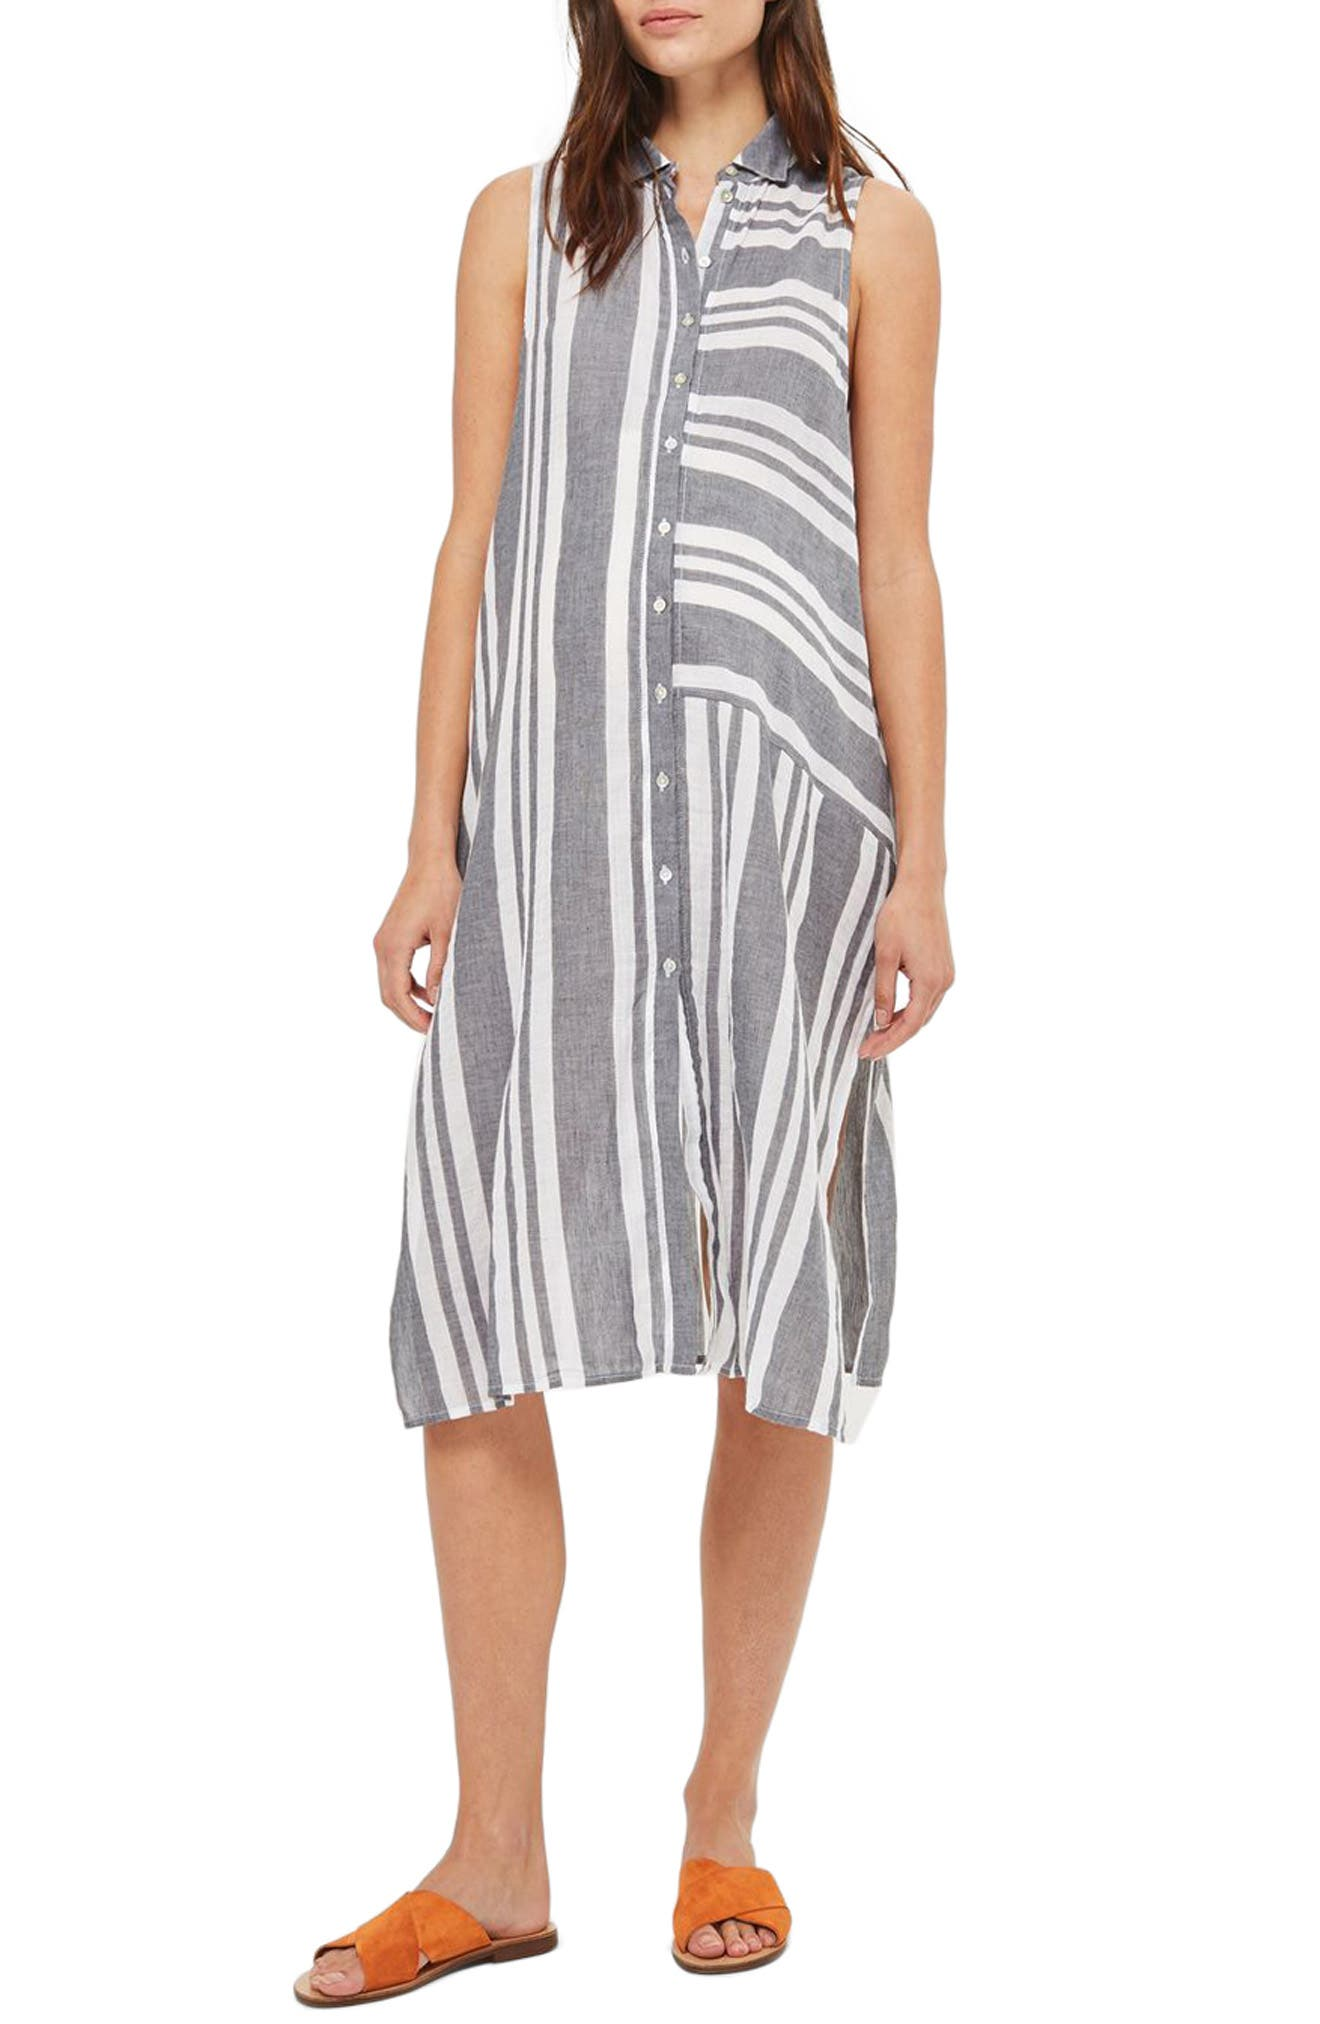 Topshop Stripe Maternity Shirtdress